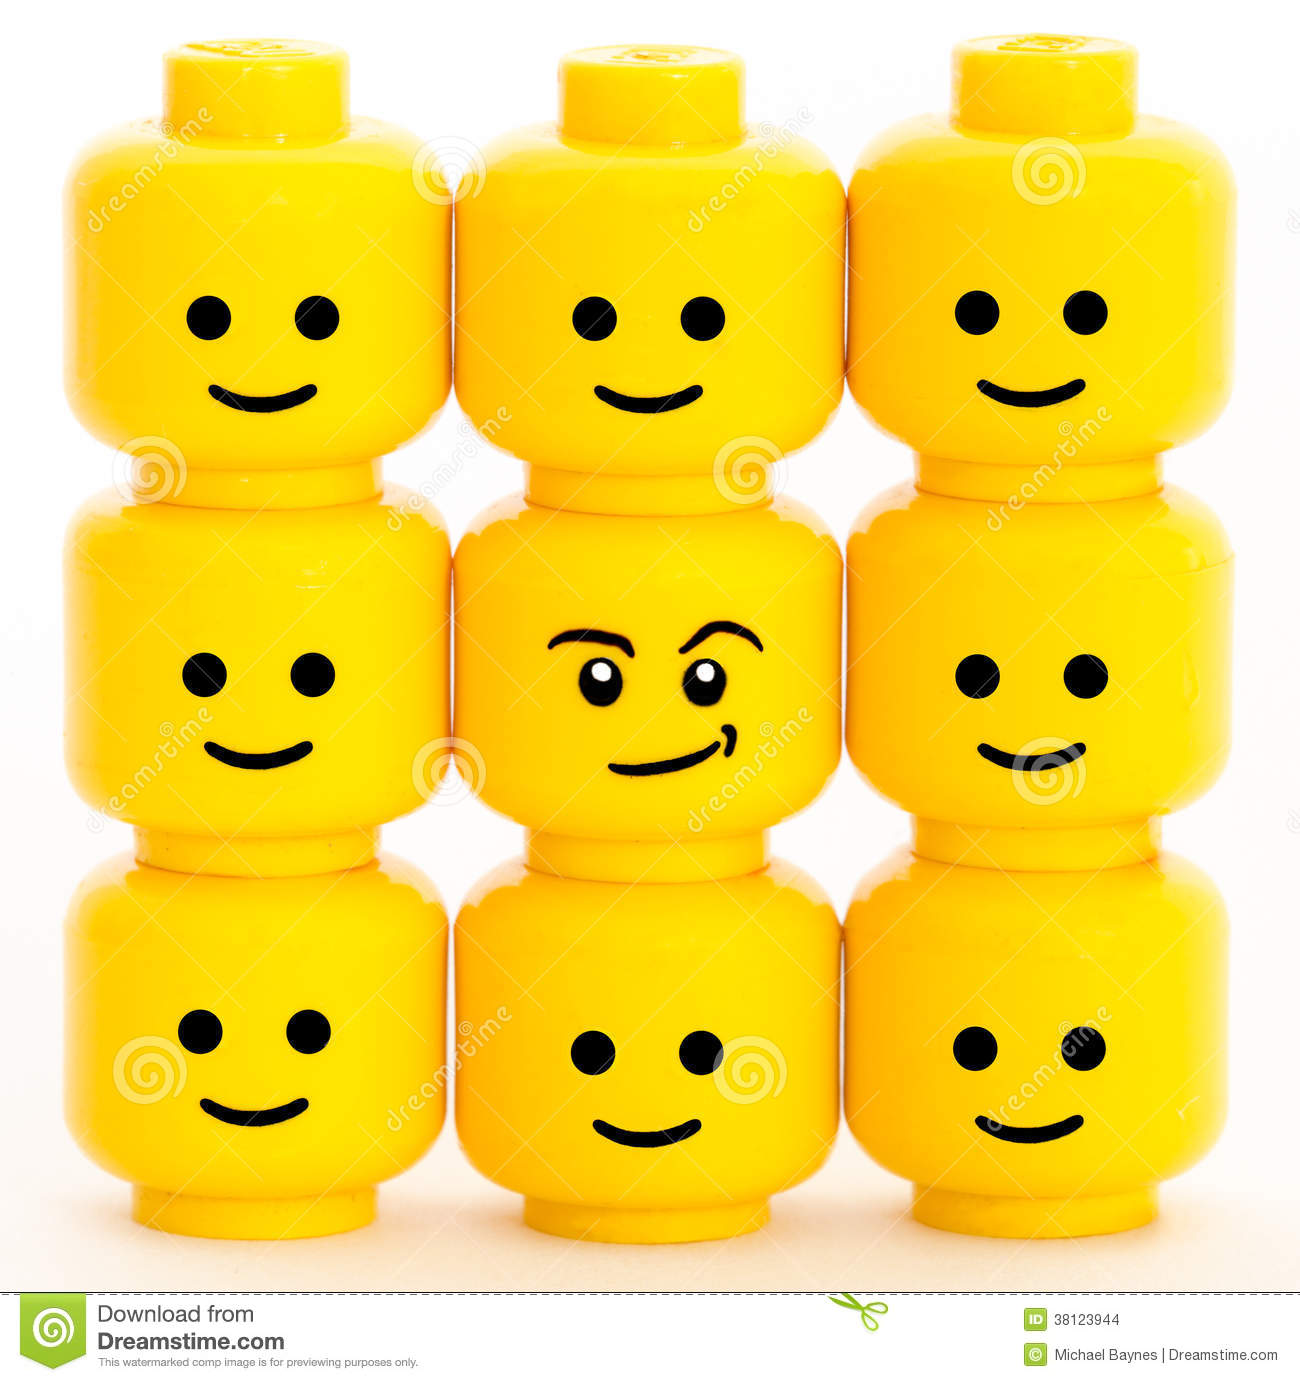 Lego men heads with different emotions.